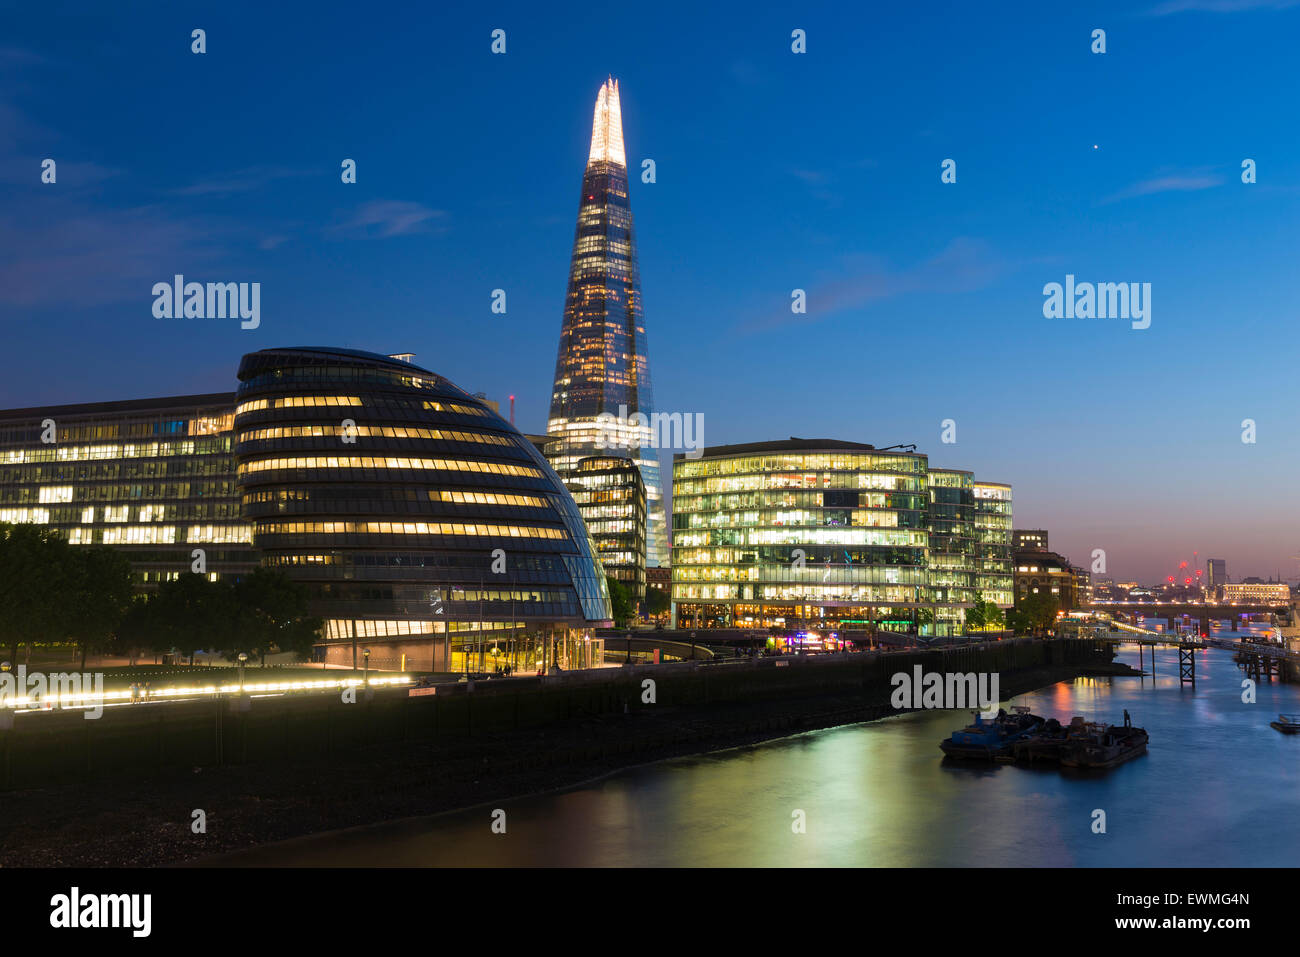 The Shard skyscraper, Thames, London, England, United Kingdom - Stock Image